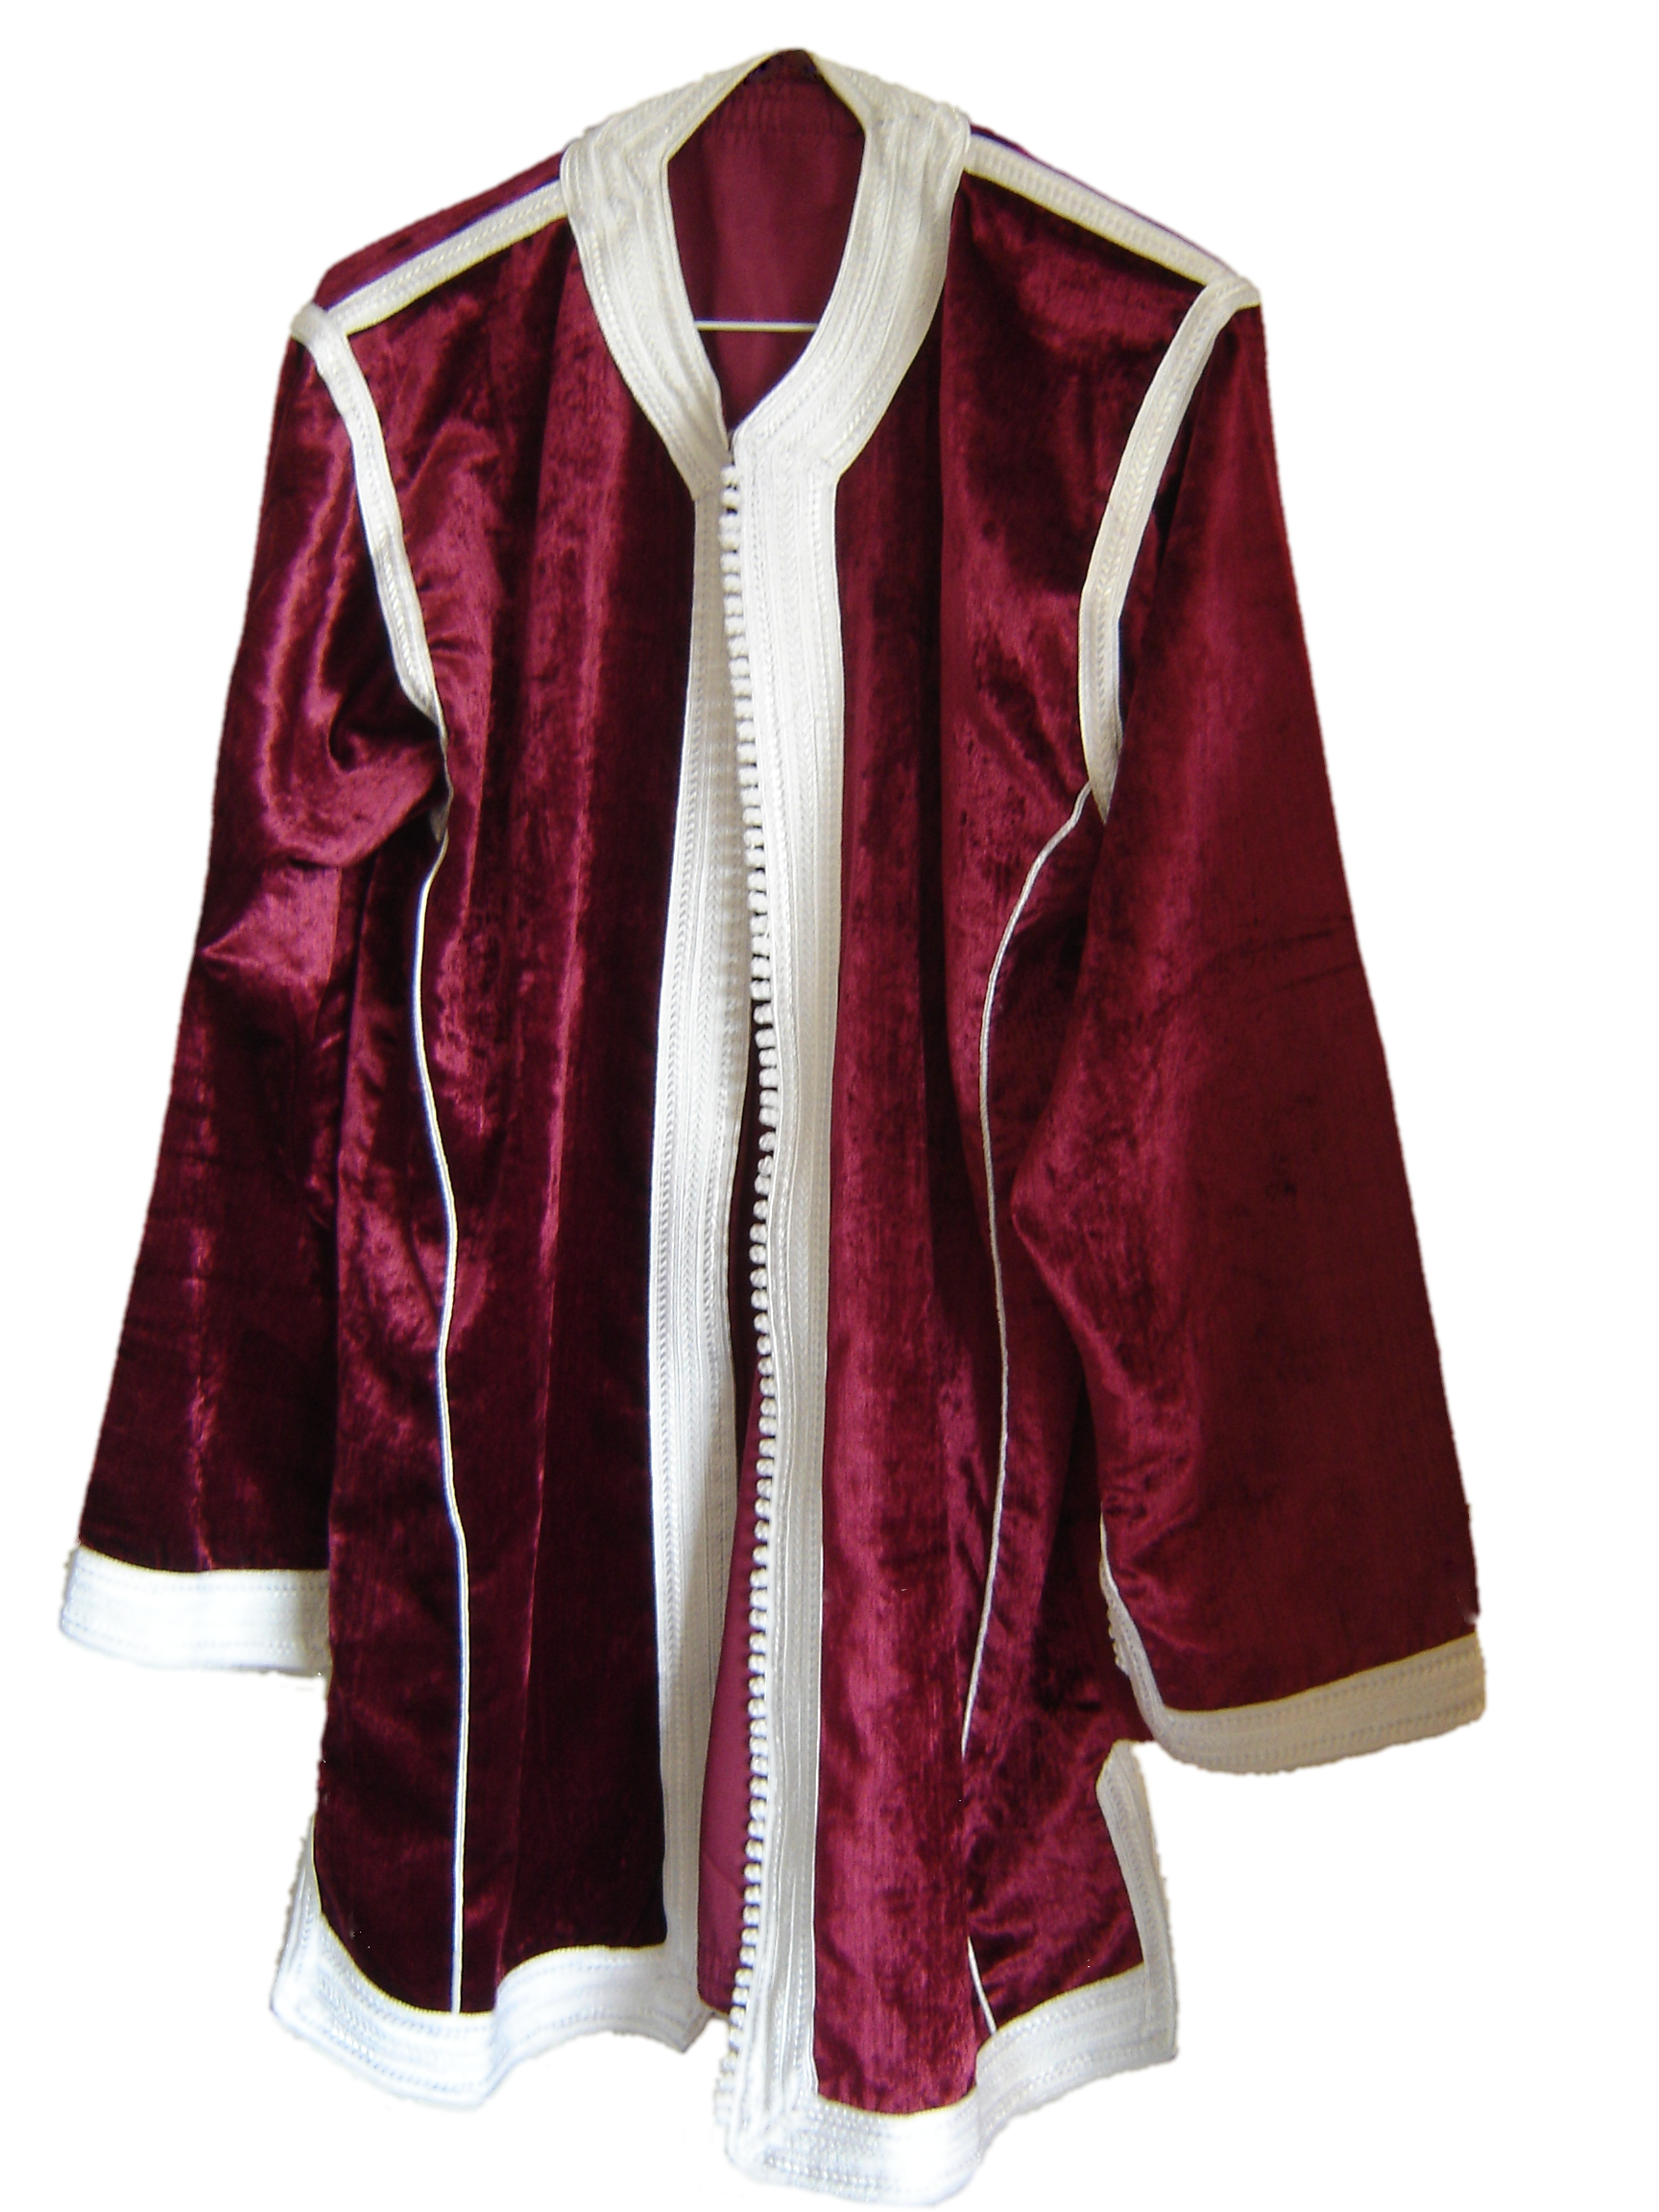 Garnet velvet Moroccan shirt, from Fez, 71 Golborne Road, London